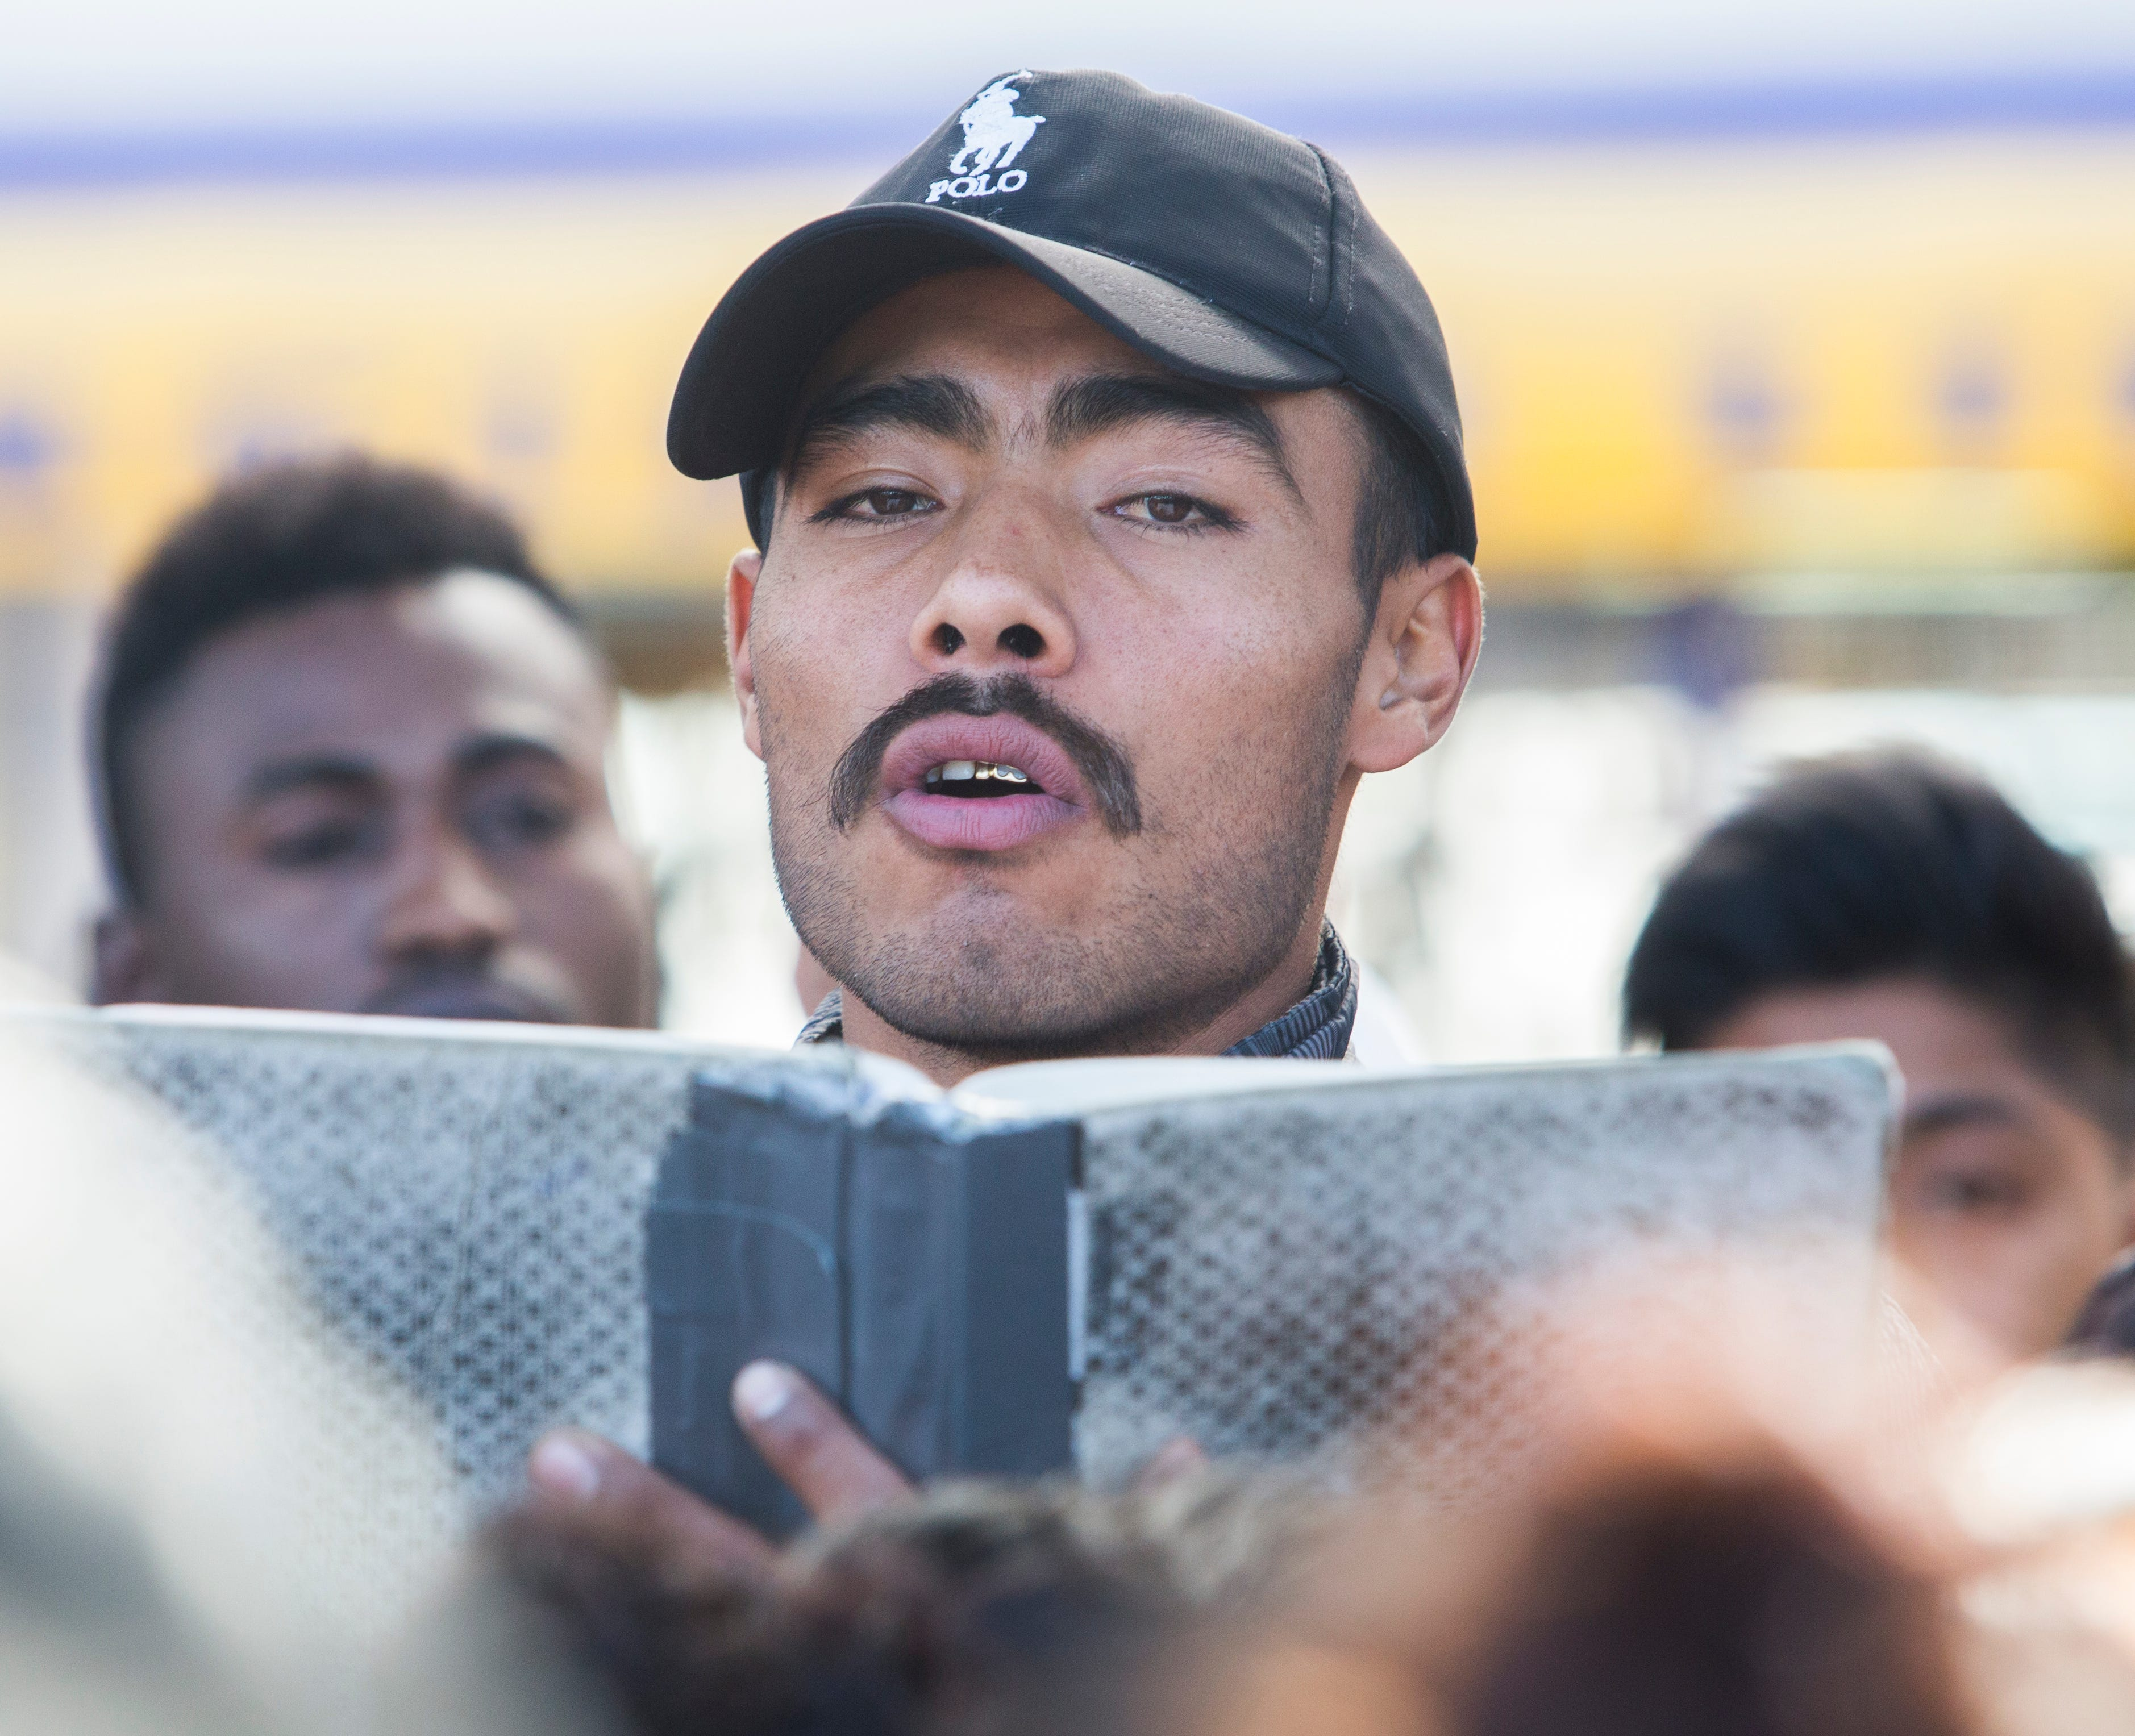 In November 2018, Yovani, a migrant from Michoacán, reads aloud the names of asylum seekers who will be interviewed by U.S. Customs and Border Protection officials in Tijuana that day.